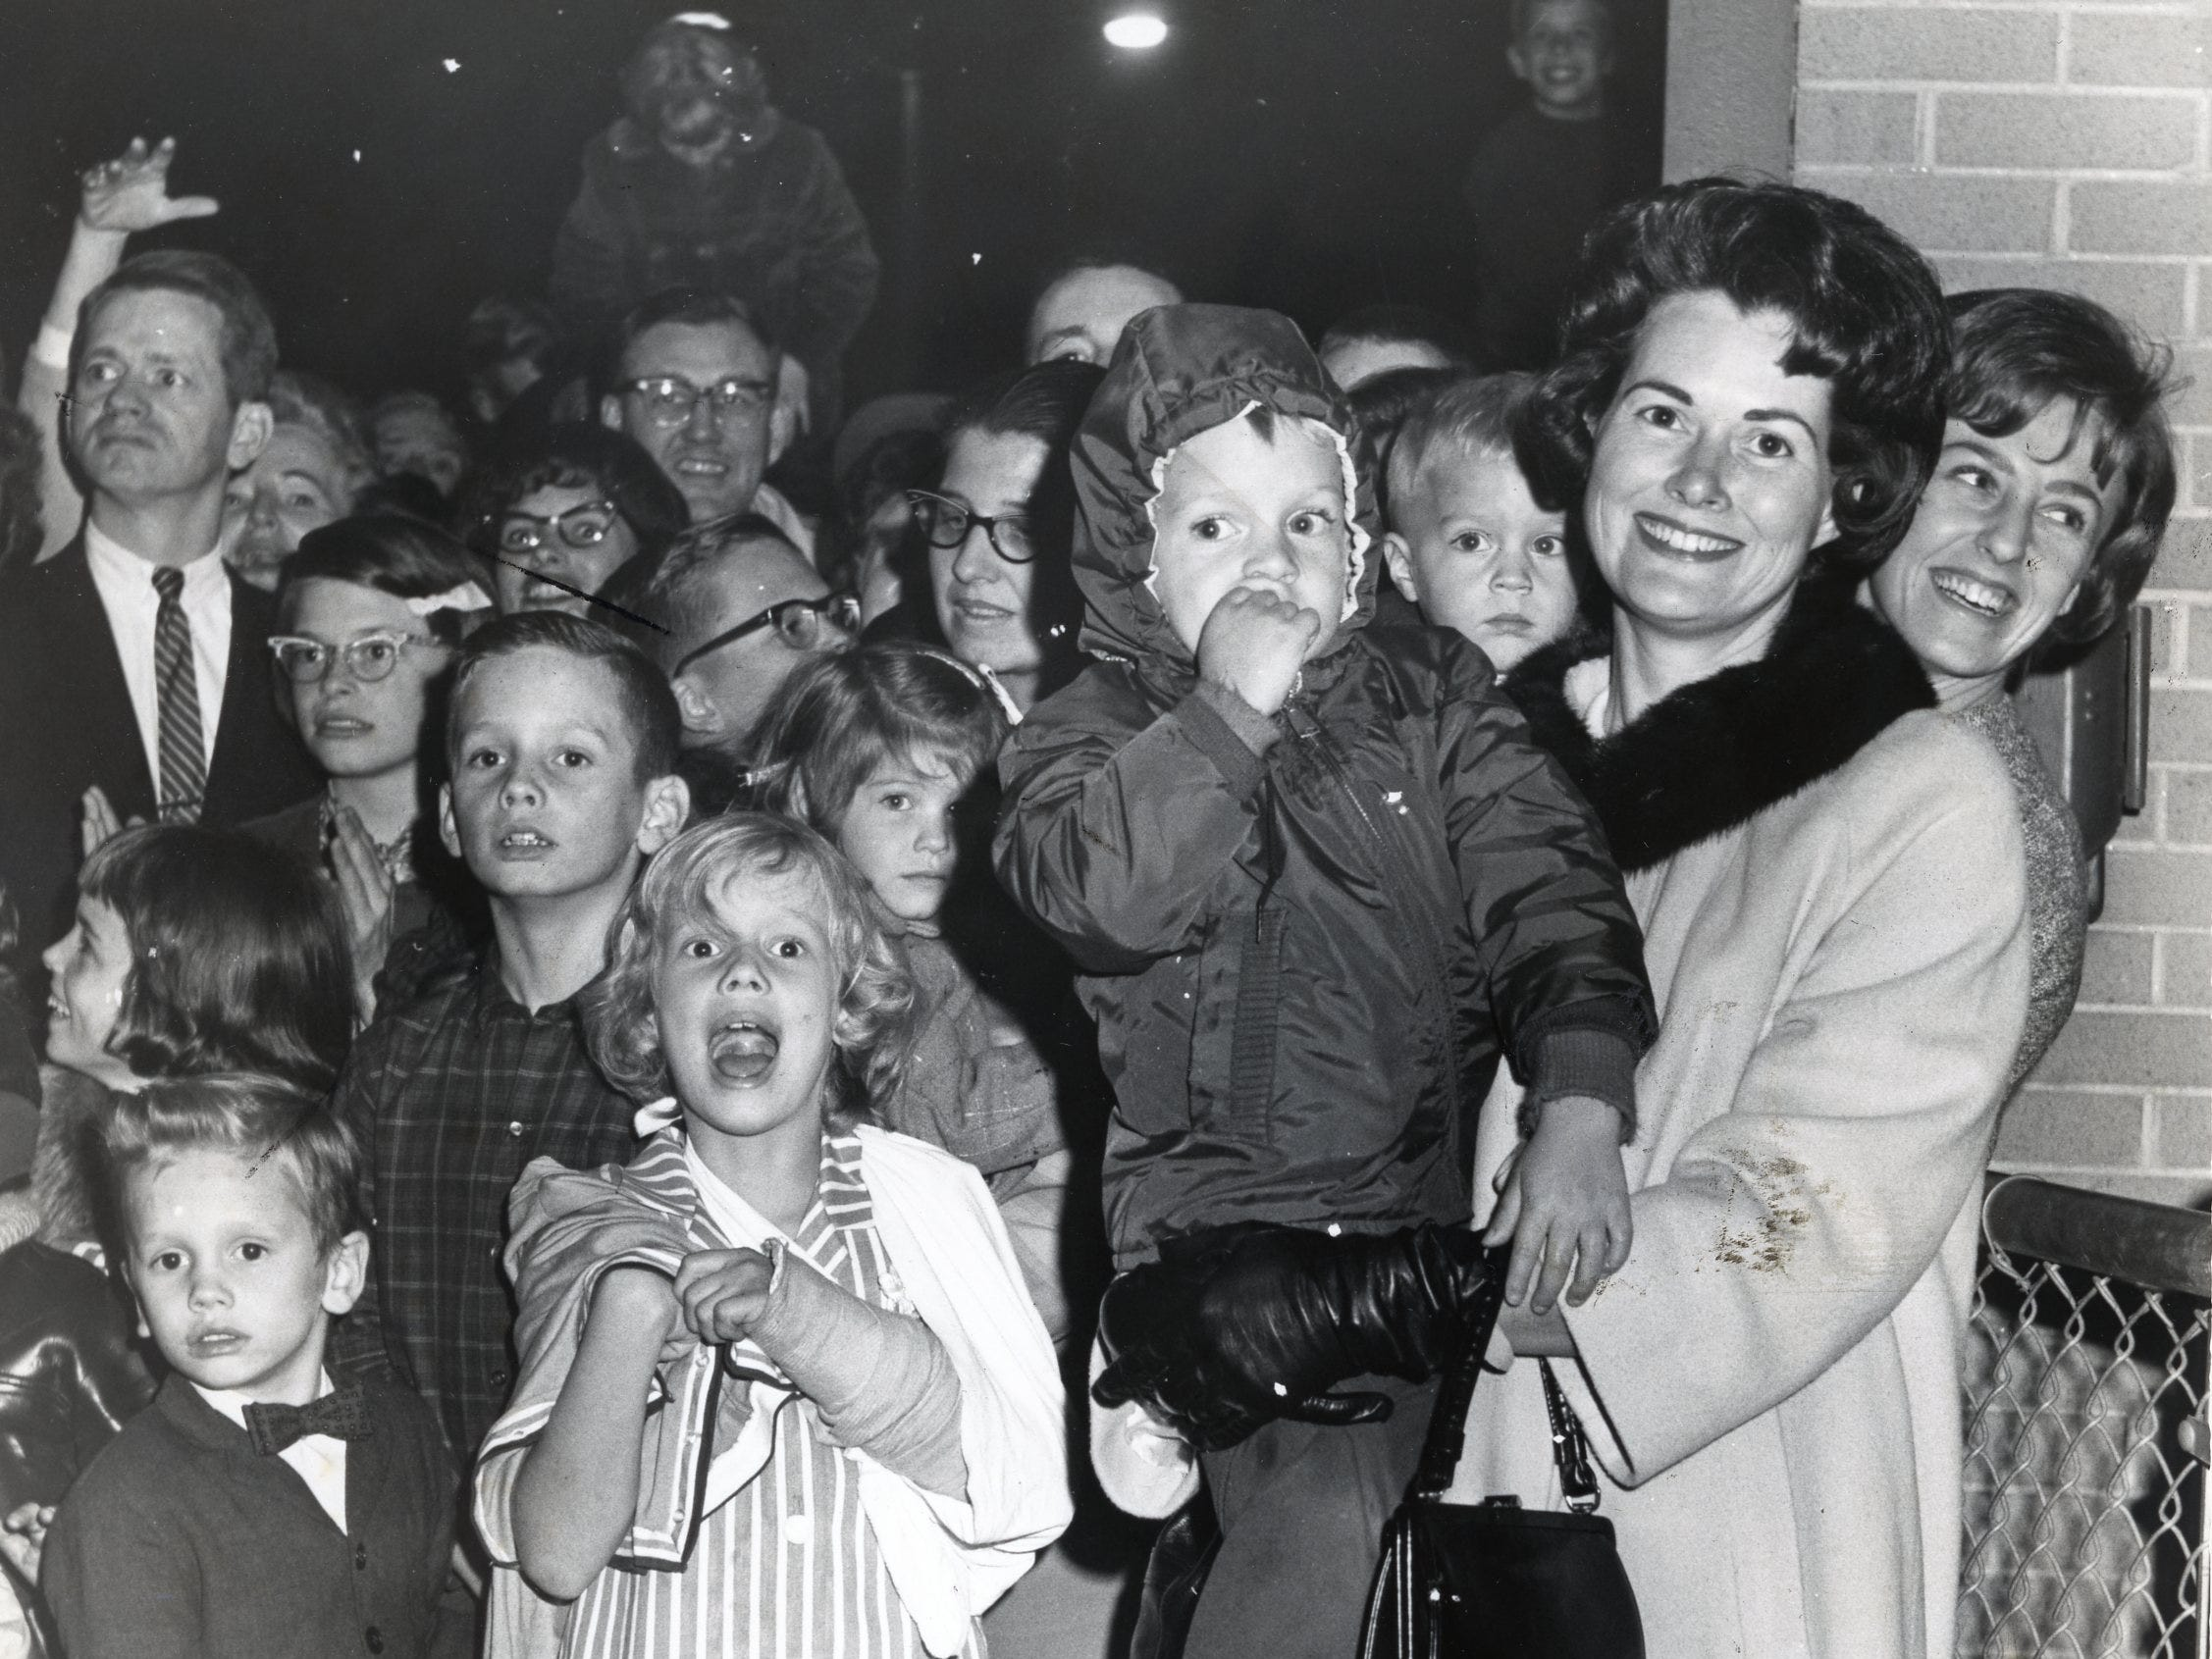 JoAnne Dickey, right holding child, in an October, 1964 photo.